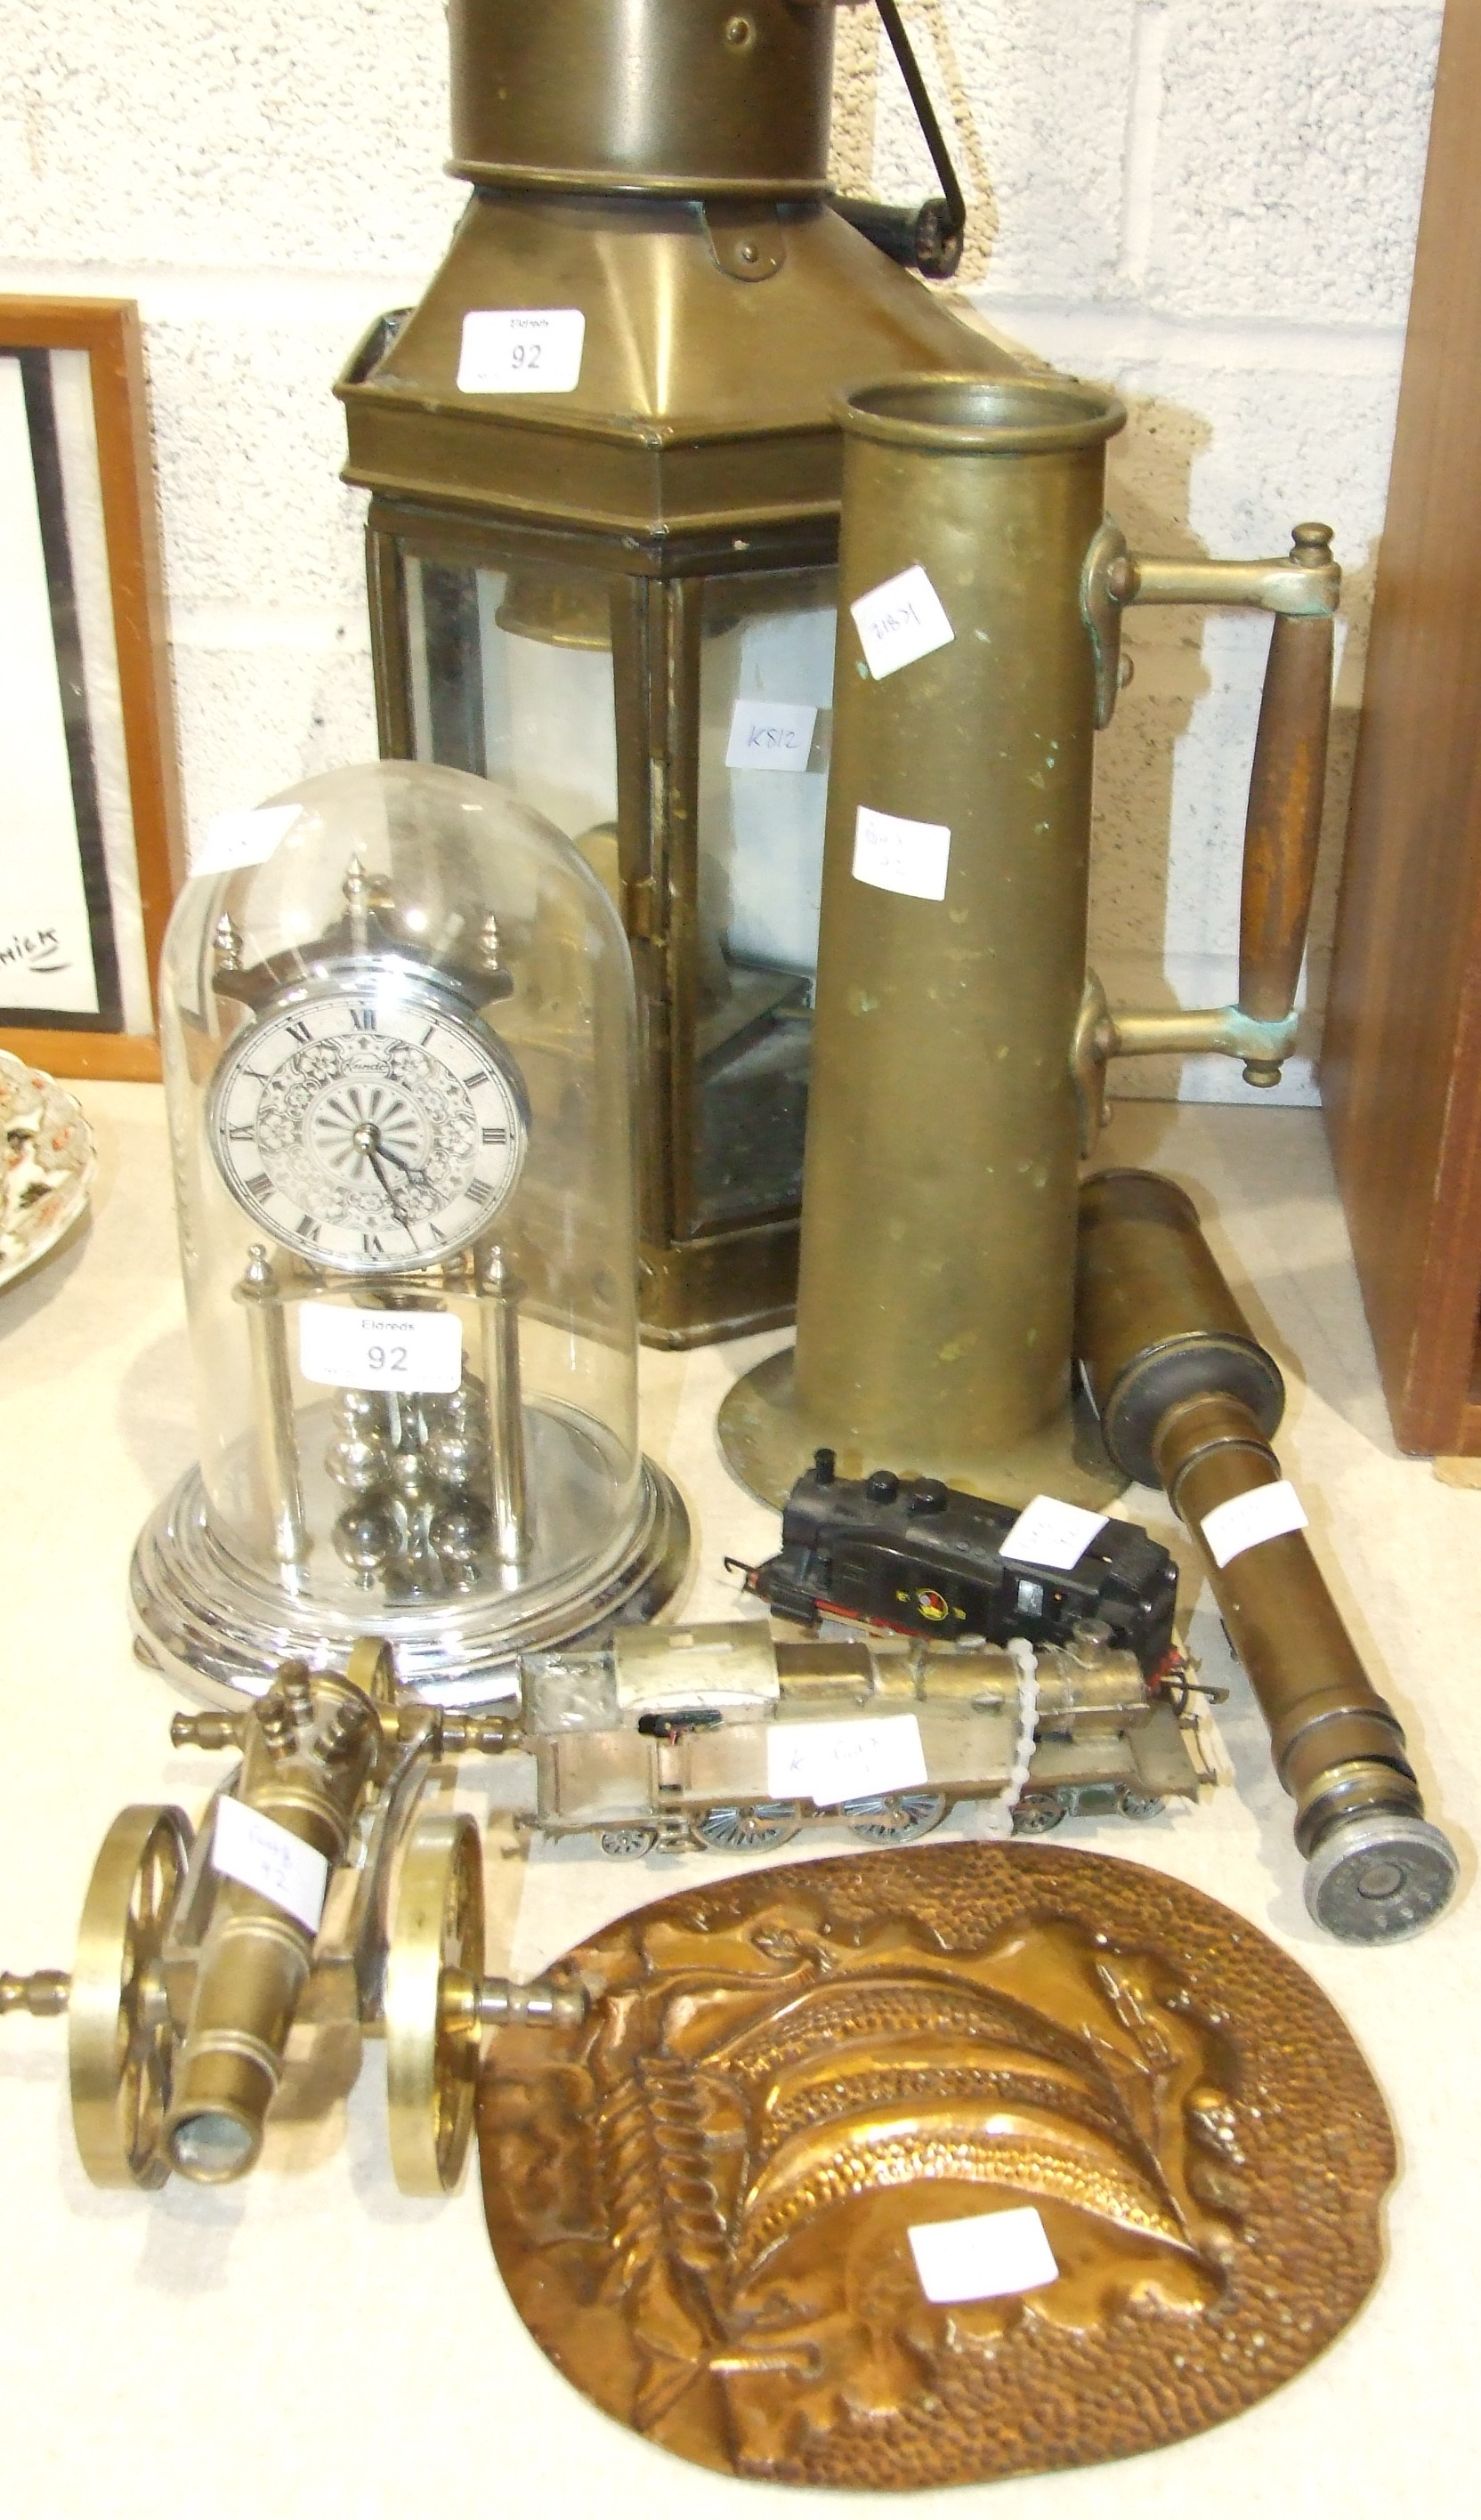 Lot 92 - A brass masthead oil lamp complete with burner, stamped Holder Stroud Sydney, a scratch-built OO